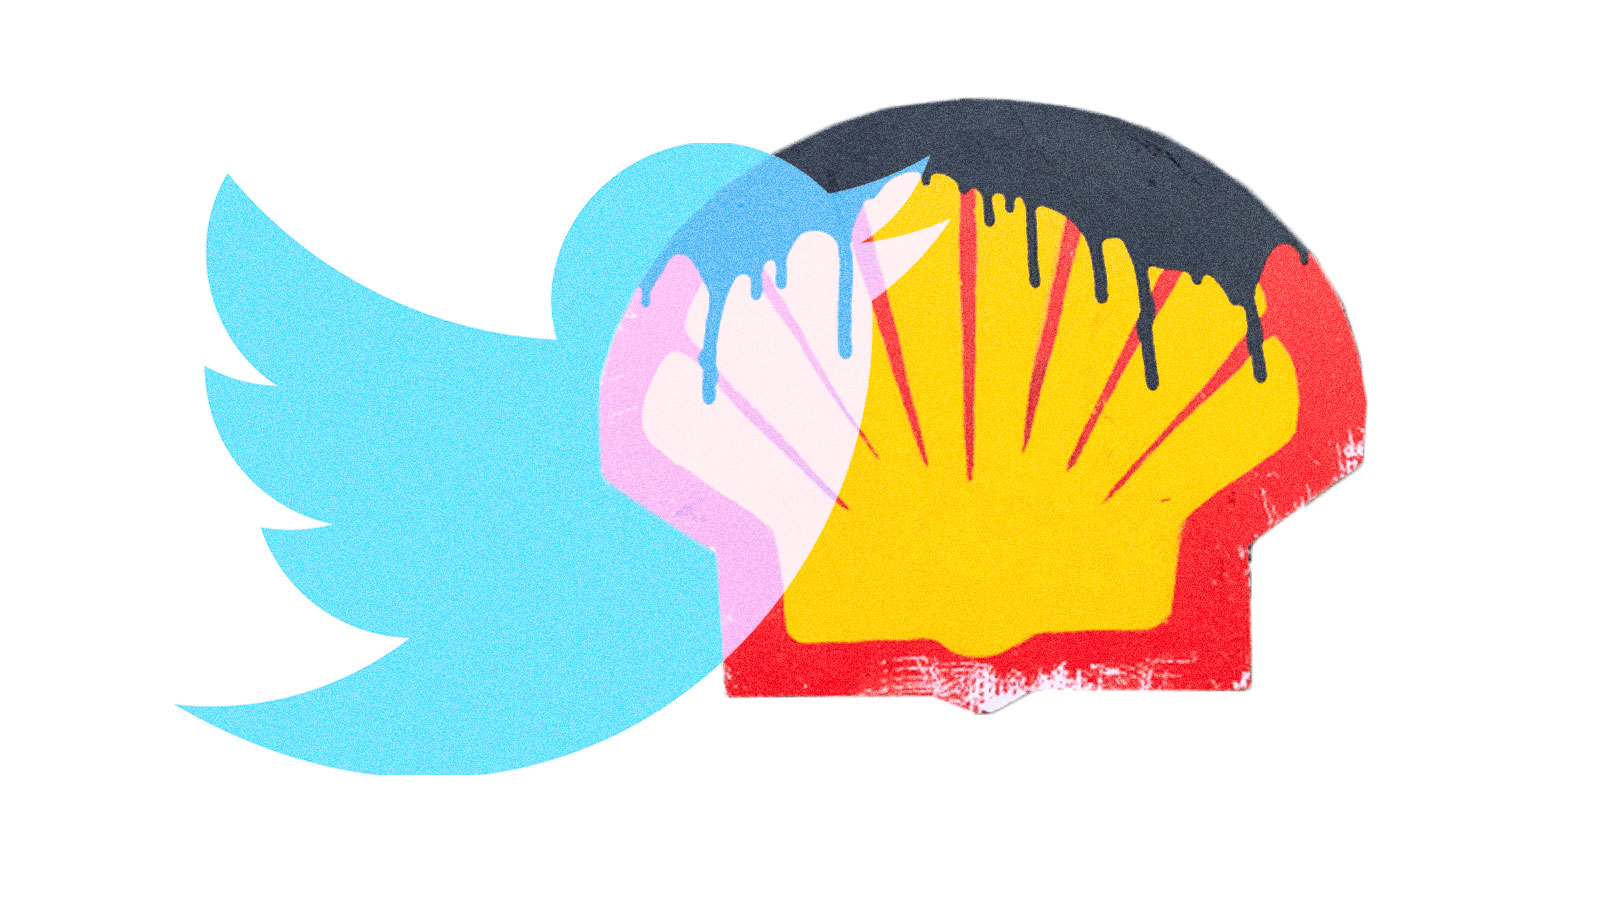 The Twitter logo on top of a Shell logo covered in dripping oil